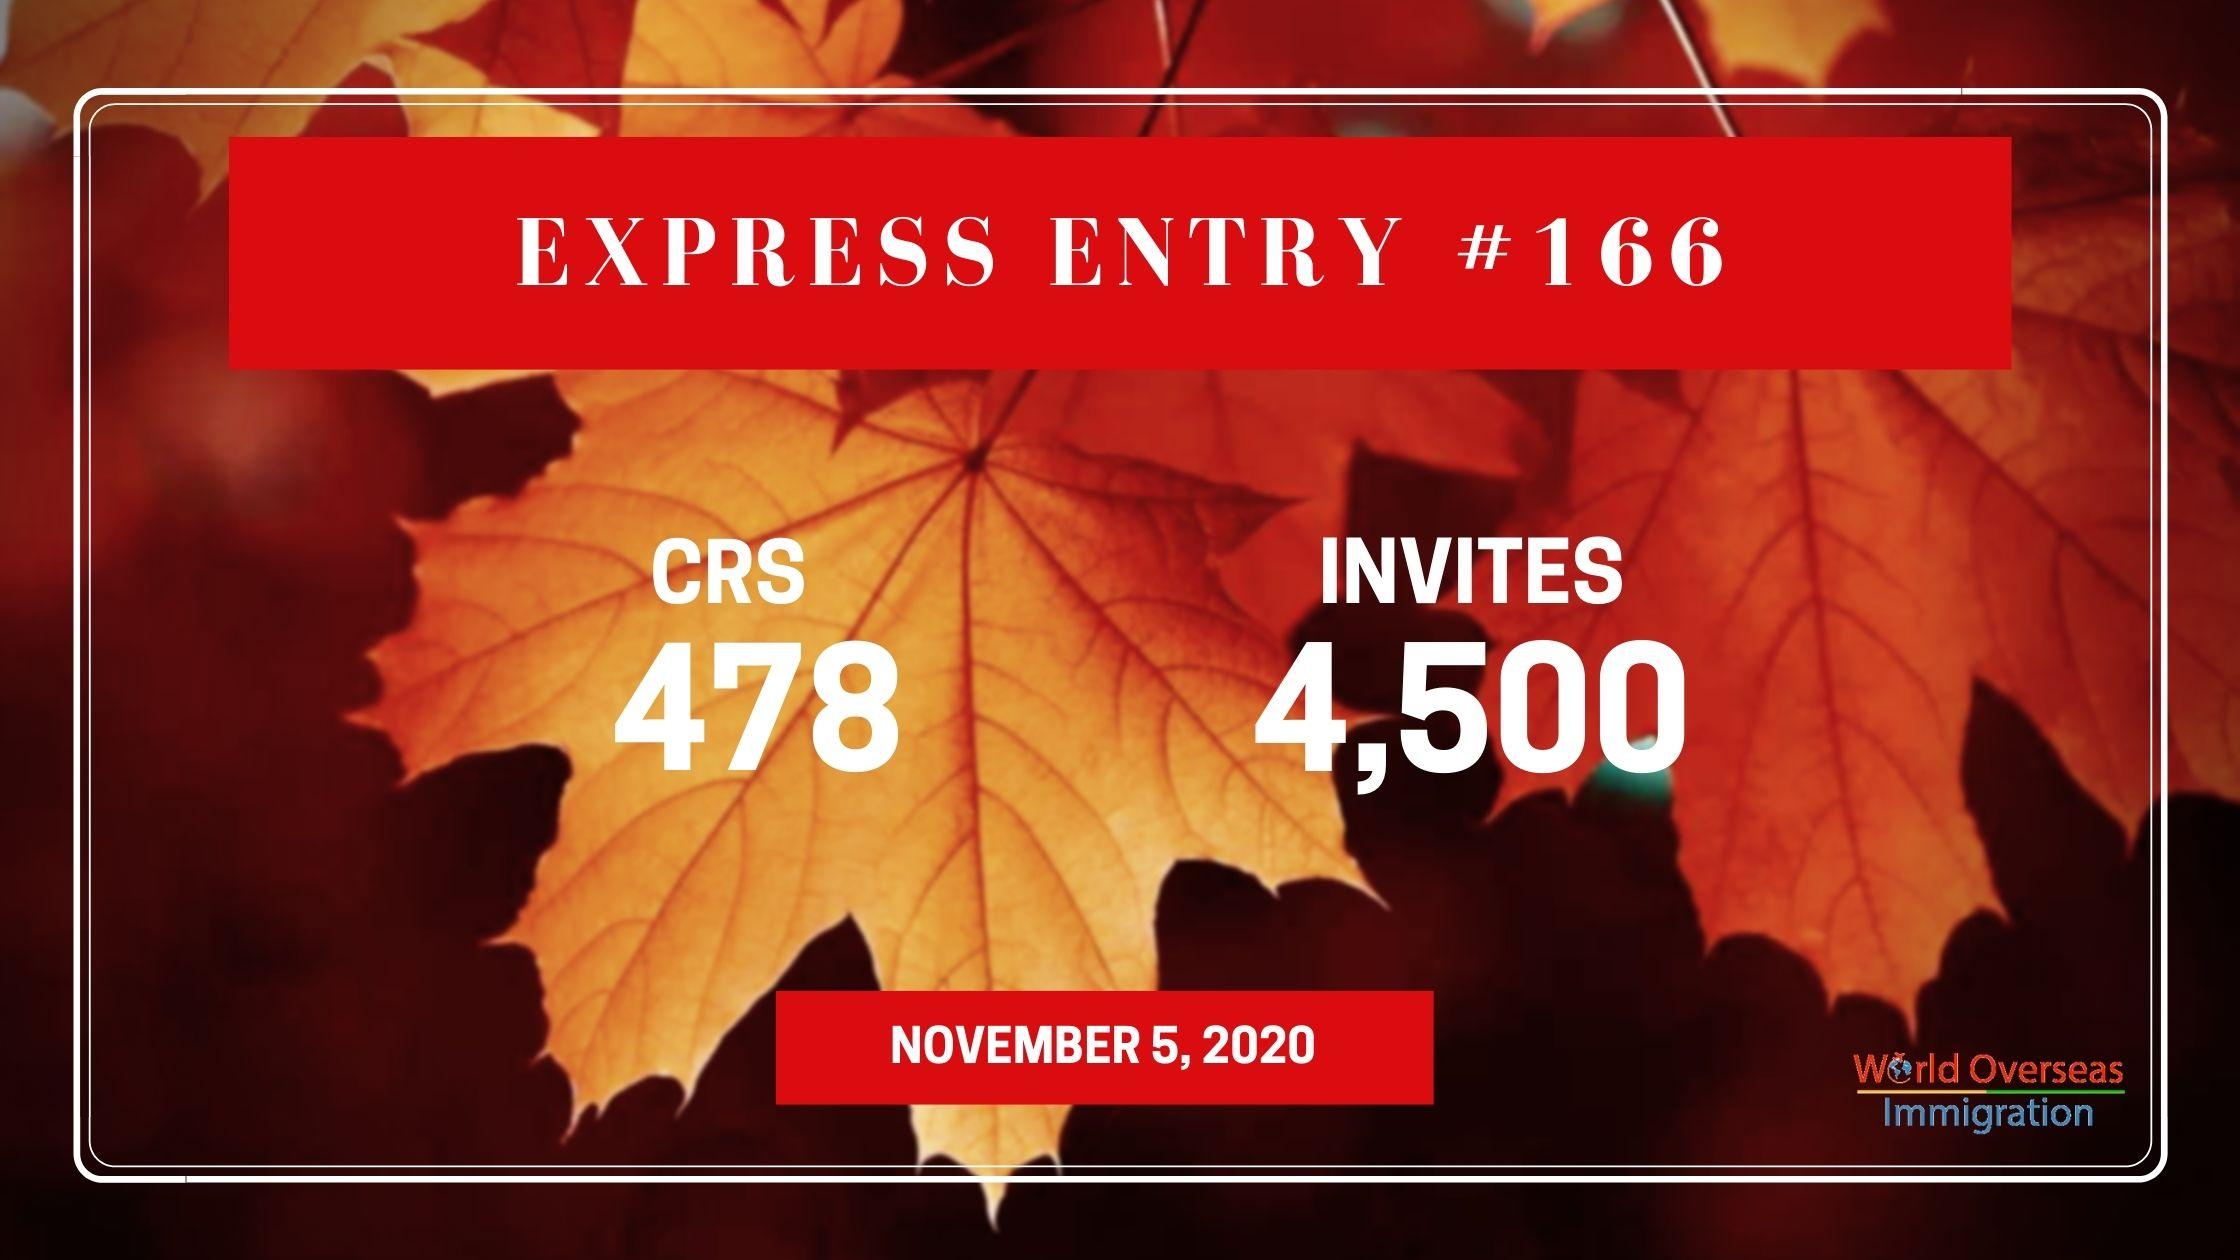 4,500 ITAs issued in new Express Entry draw